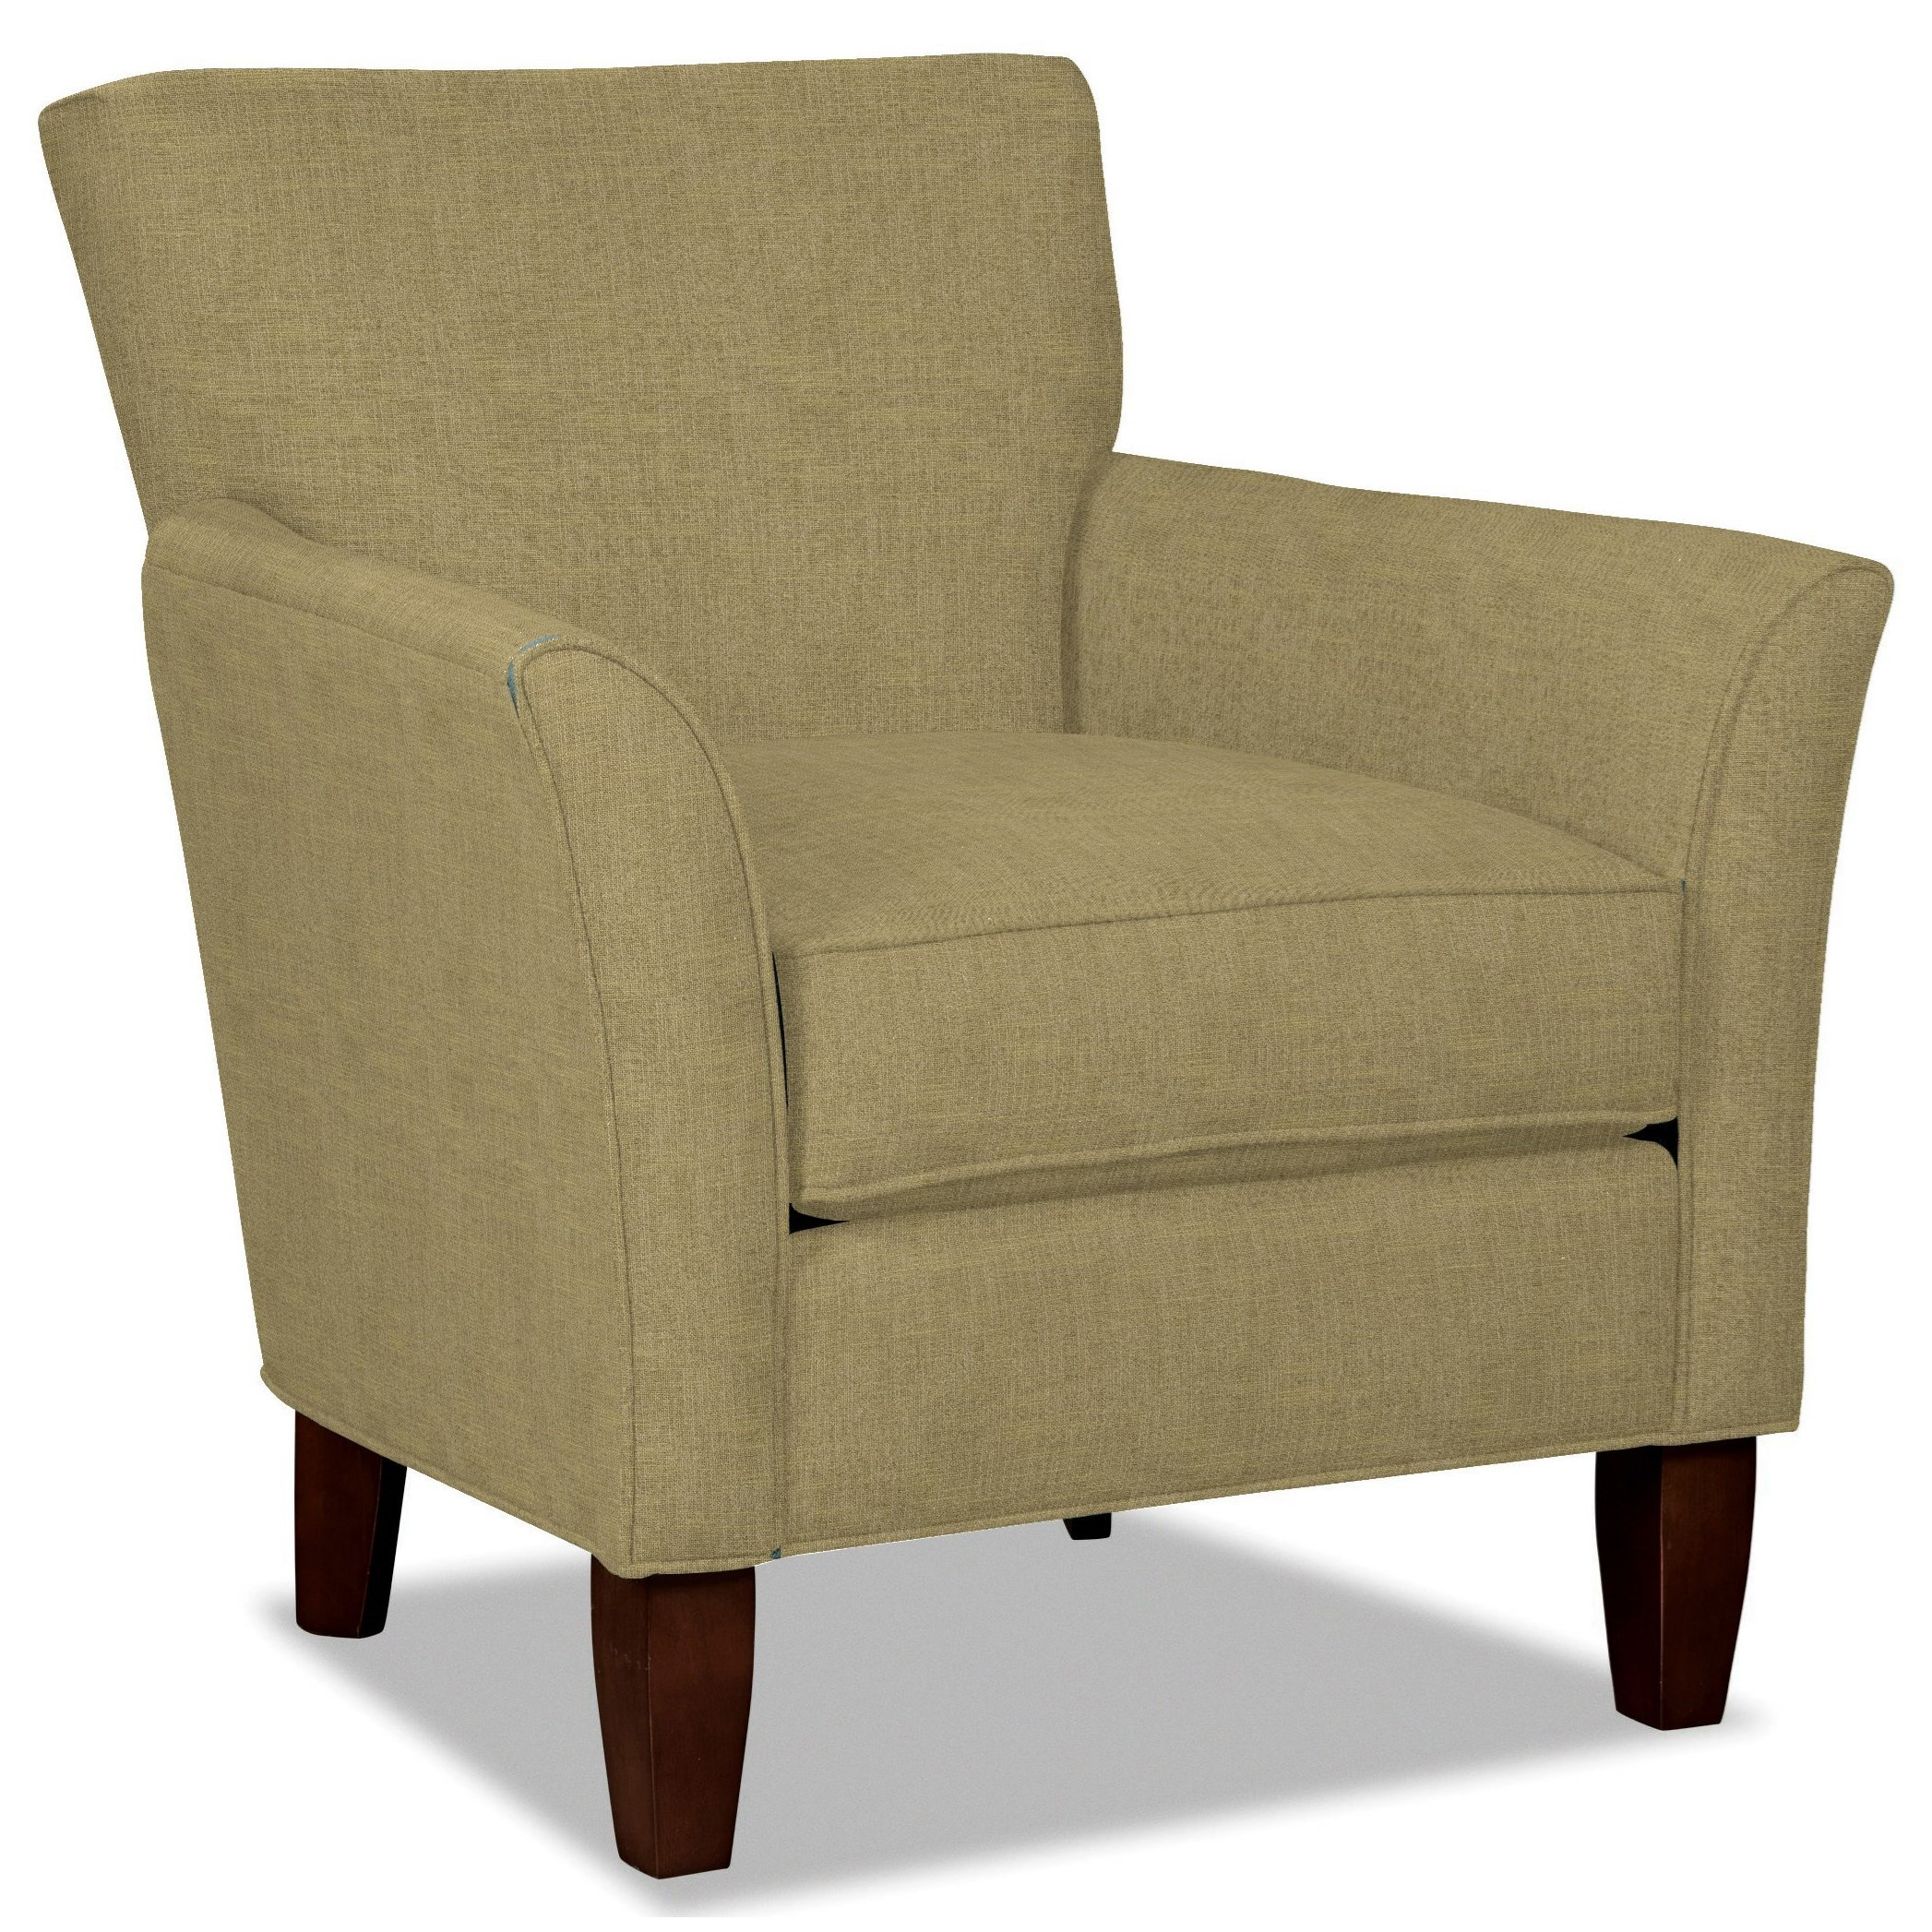 Craftmaster 060110 Accent Chair - Item Number: 060110-SIESTA-15